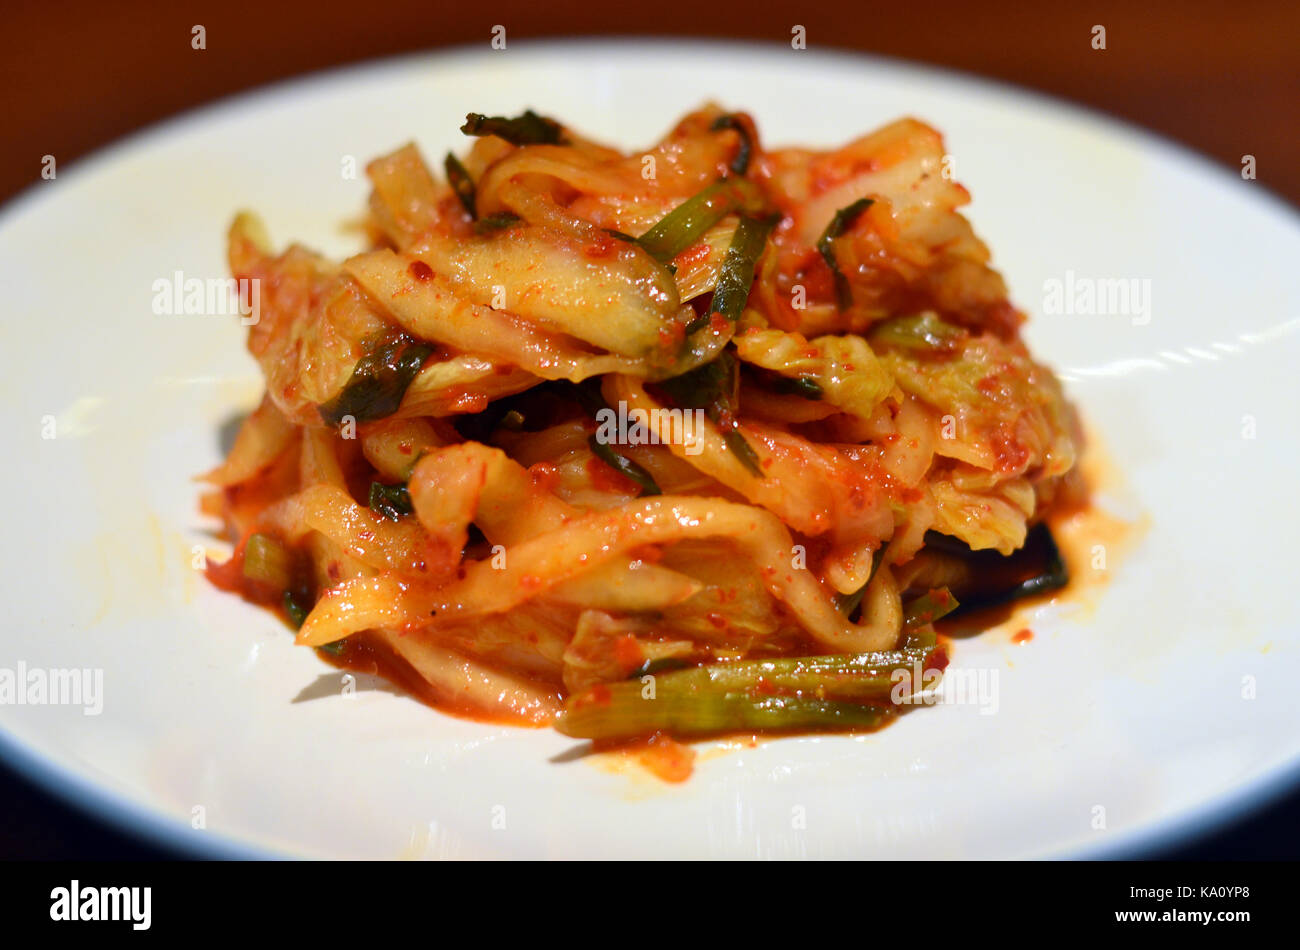 Korean Kimchi Photography High Resolution Stock Photography And Images Alamy